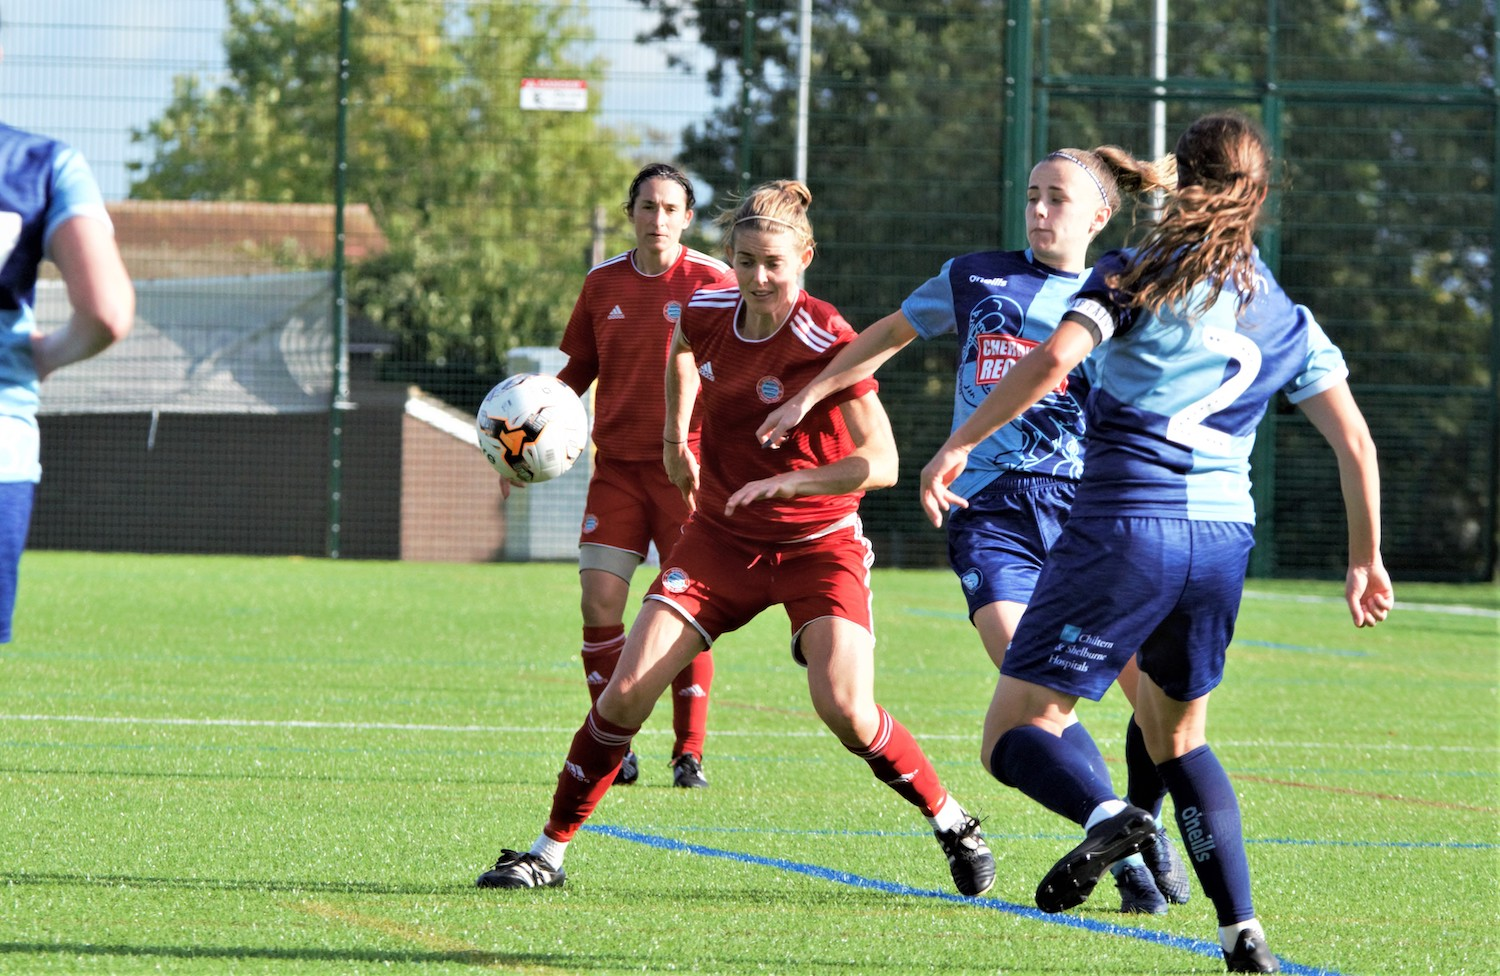 Read the full article - Lawrence cuts a frustrated figure as Worthing Women bow out the Cup